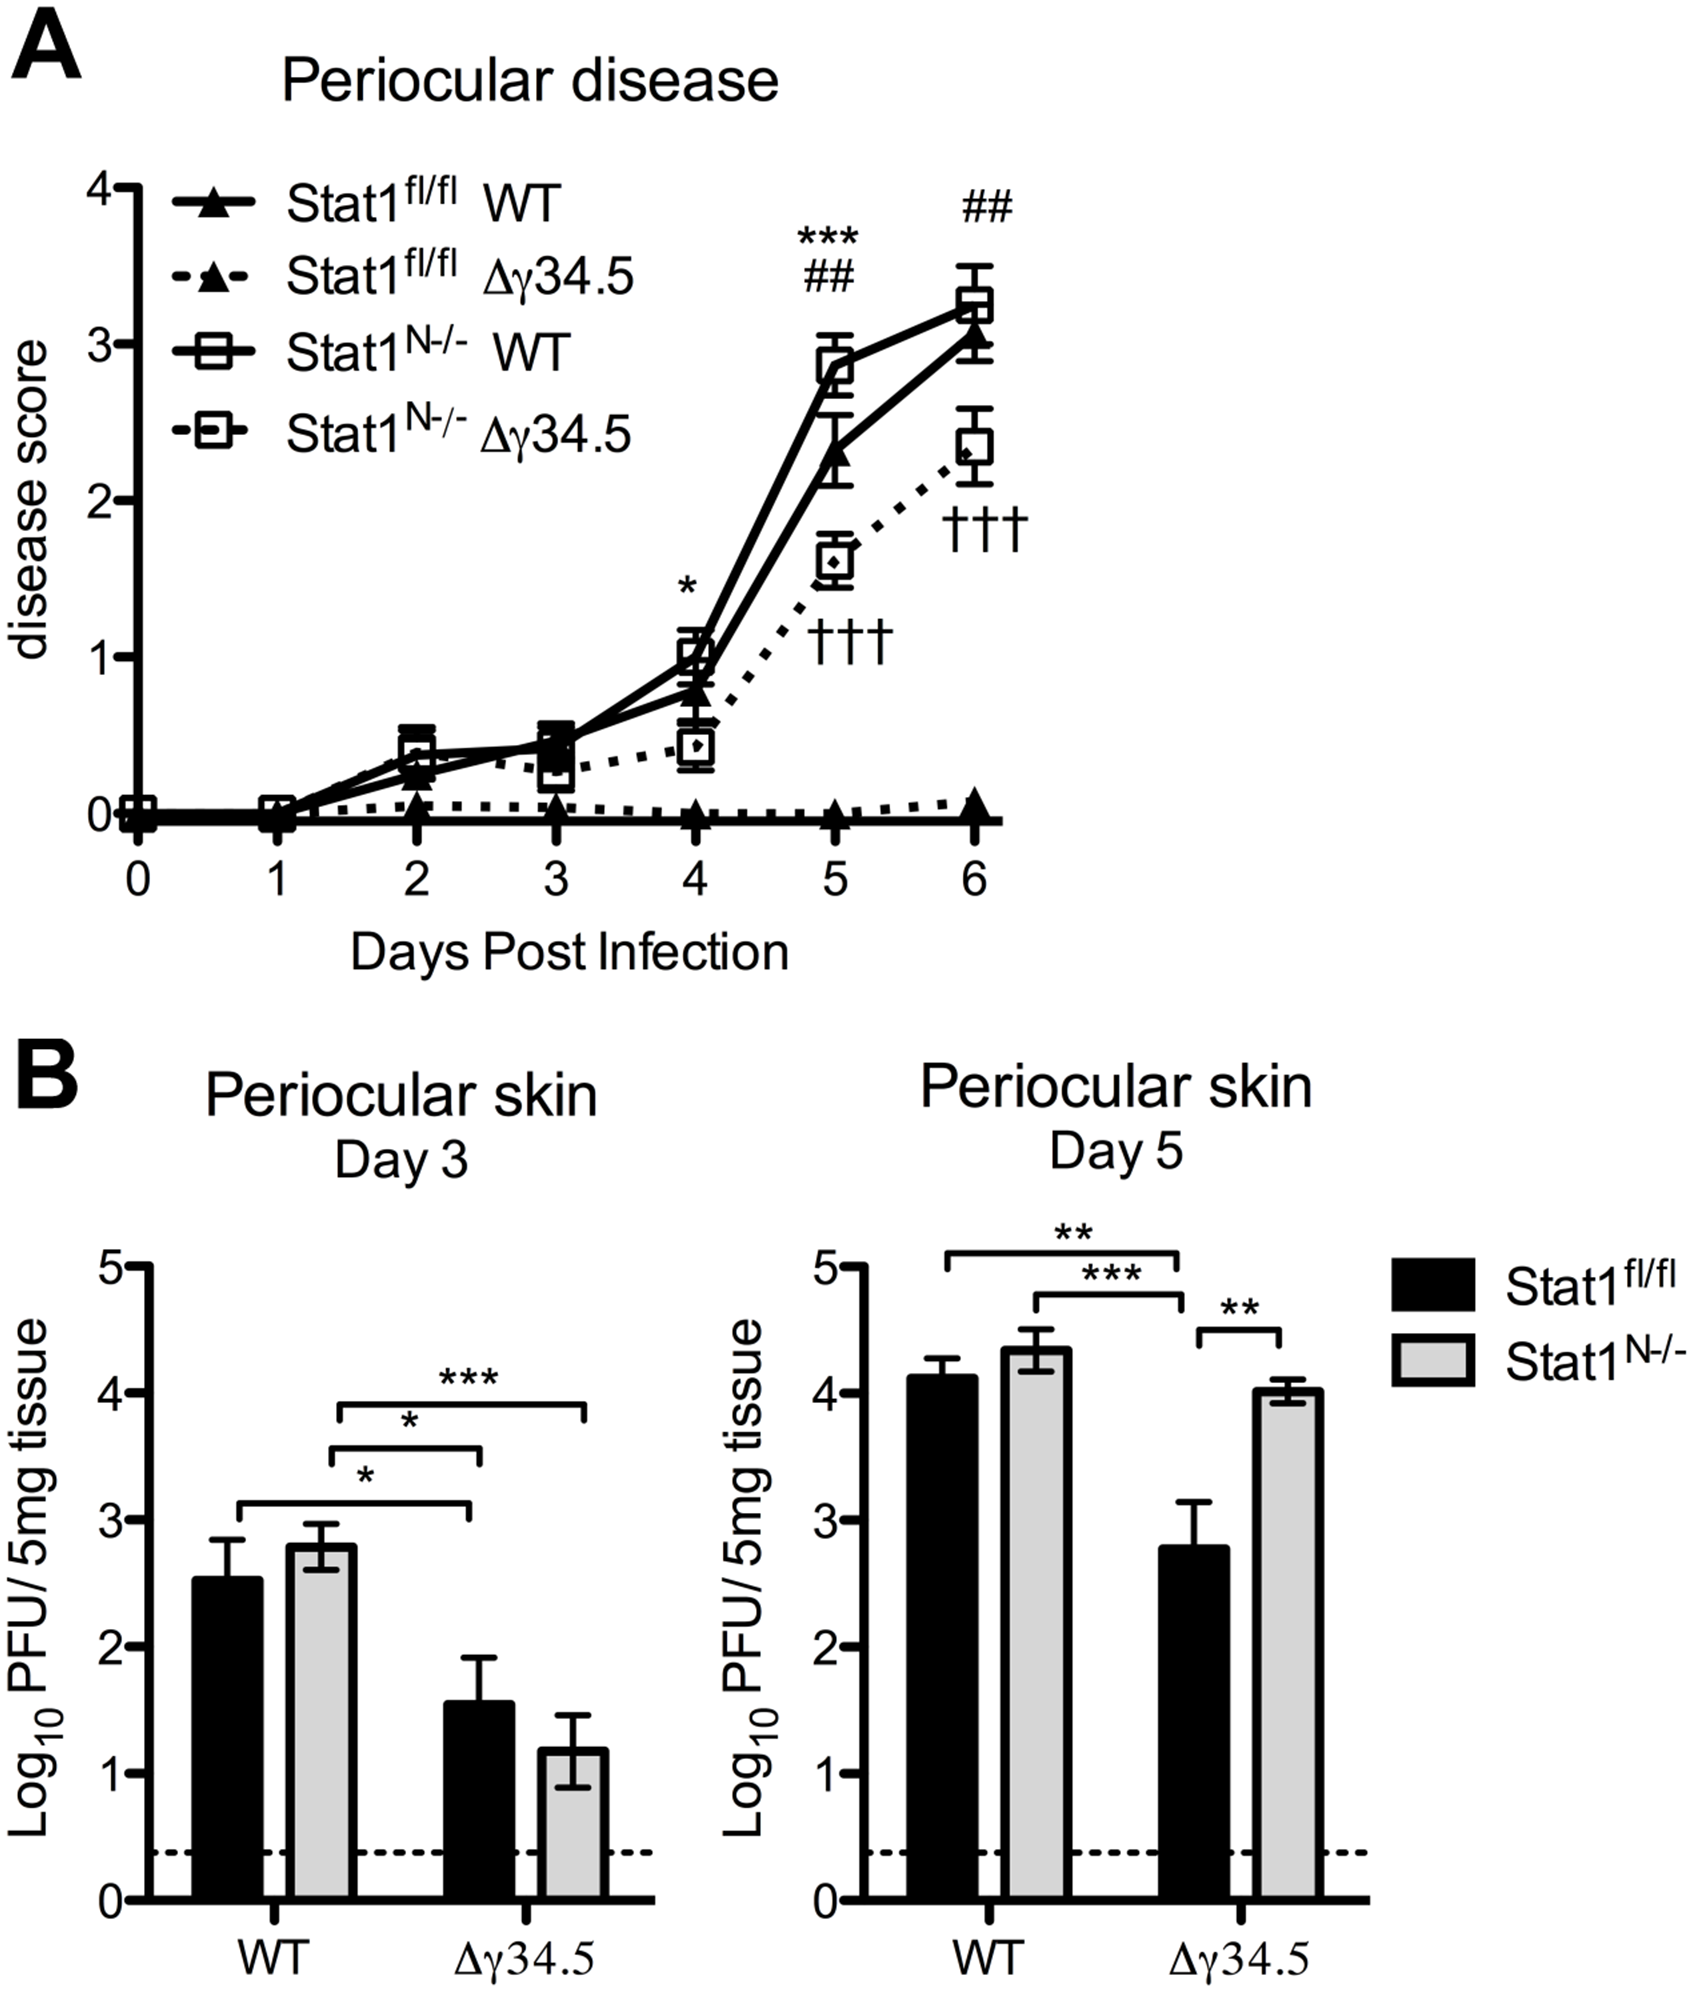 Viral zosteriform spread and pathogenesis in non-neuronal tissues of Stat1<sup>N-/-</sup> mice.